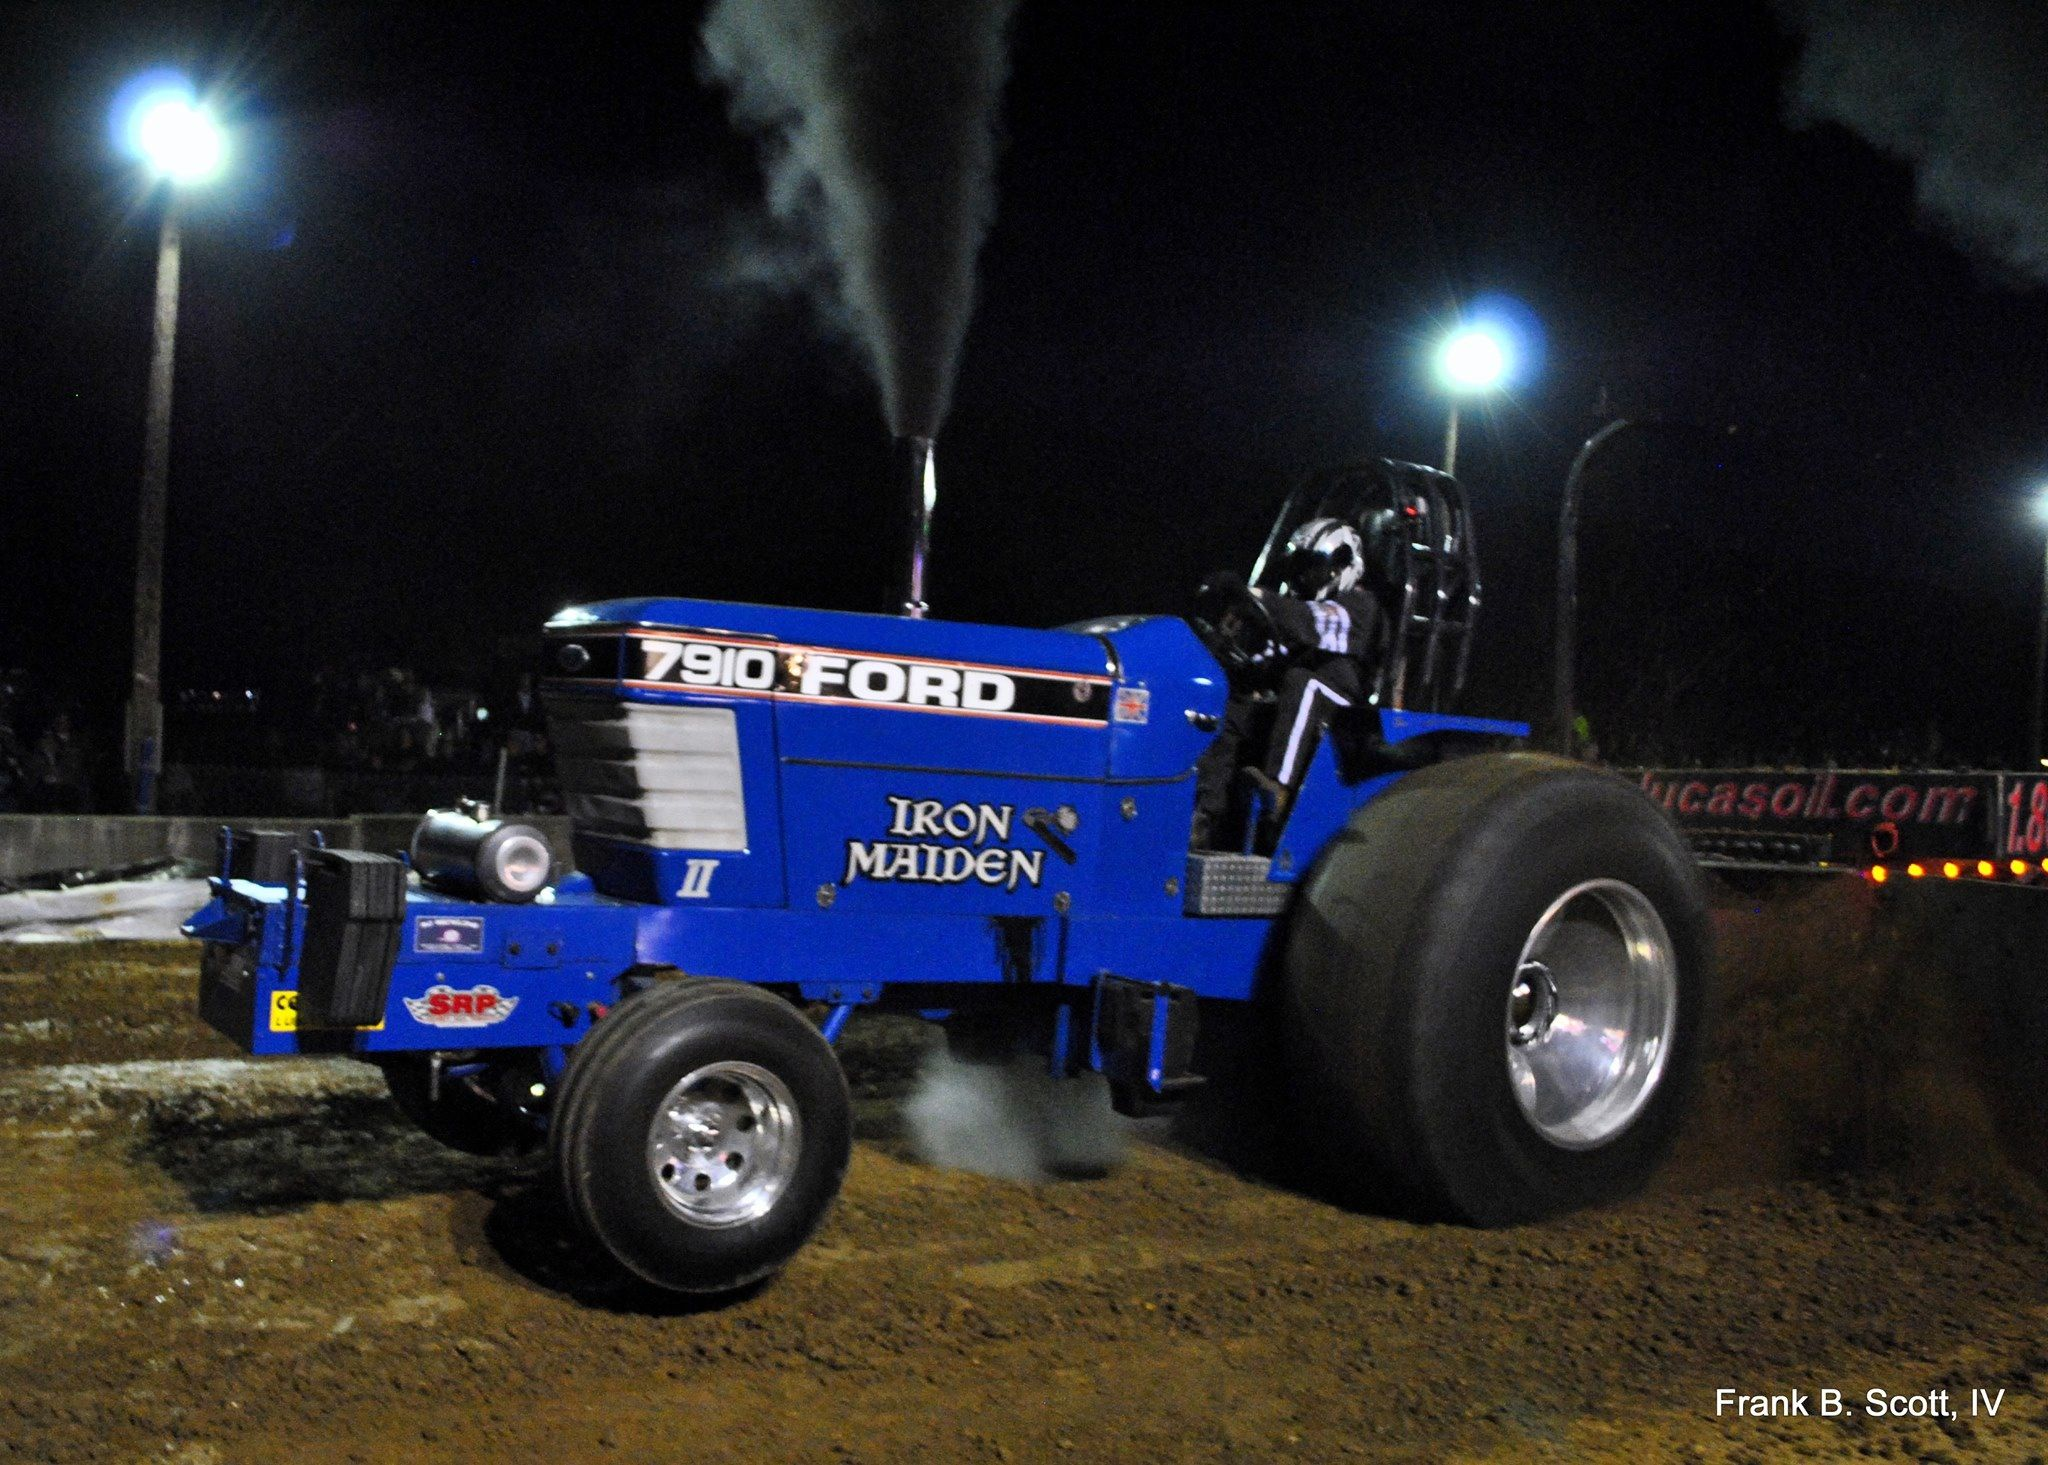 Ford pulling tractor   Farming/agriculture/equipment   Truck